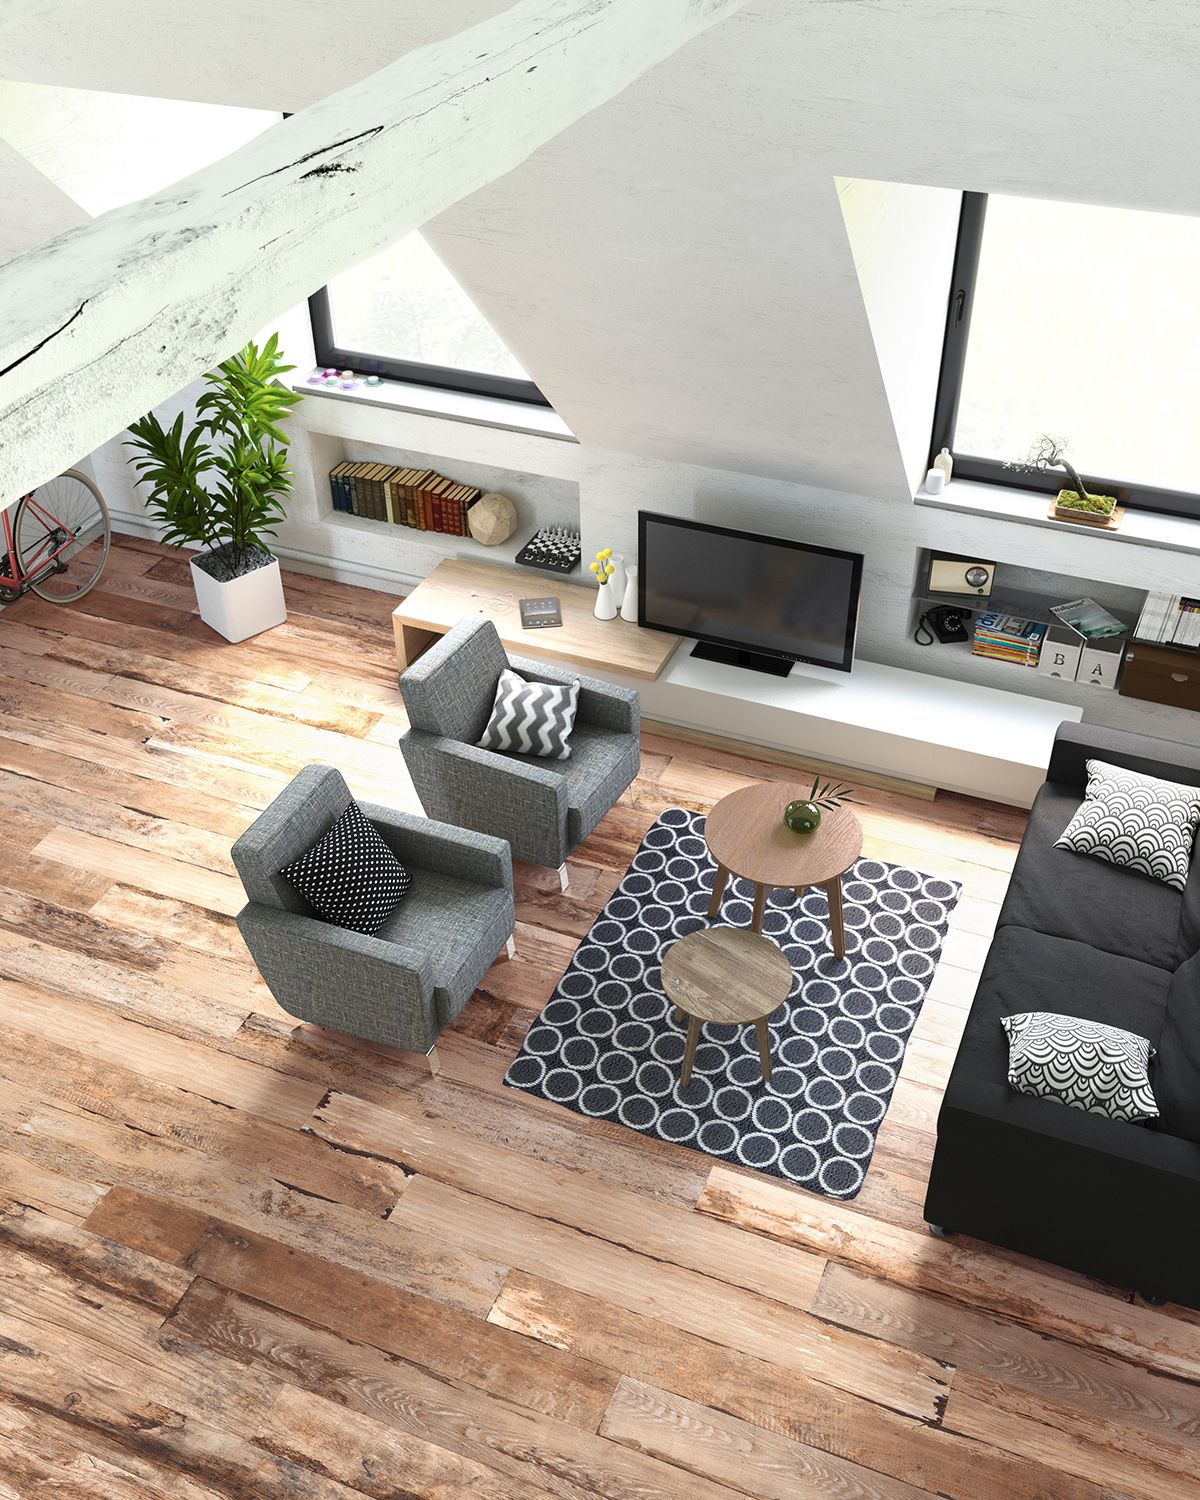 Kenzo collection wood experience floortile tile porcelain floortile tile porcelain pavimento livingroom dailygadgetfo Choice Image